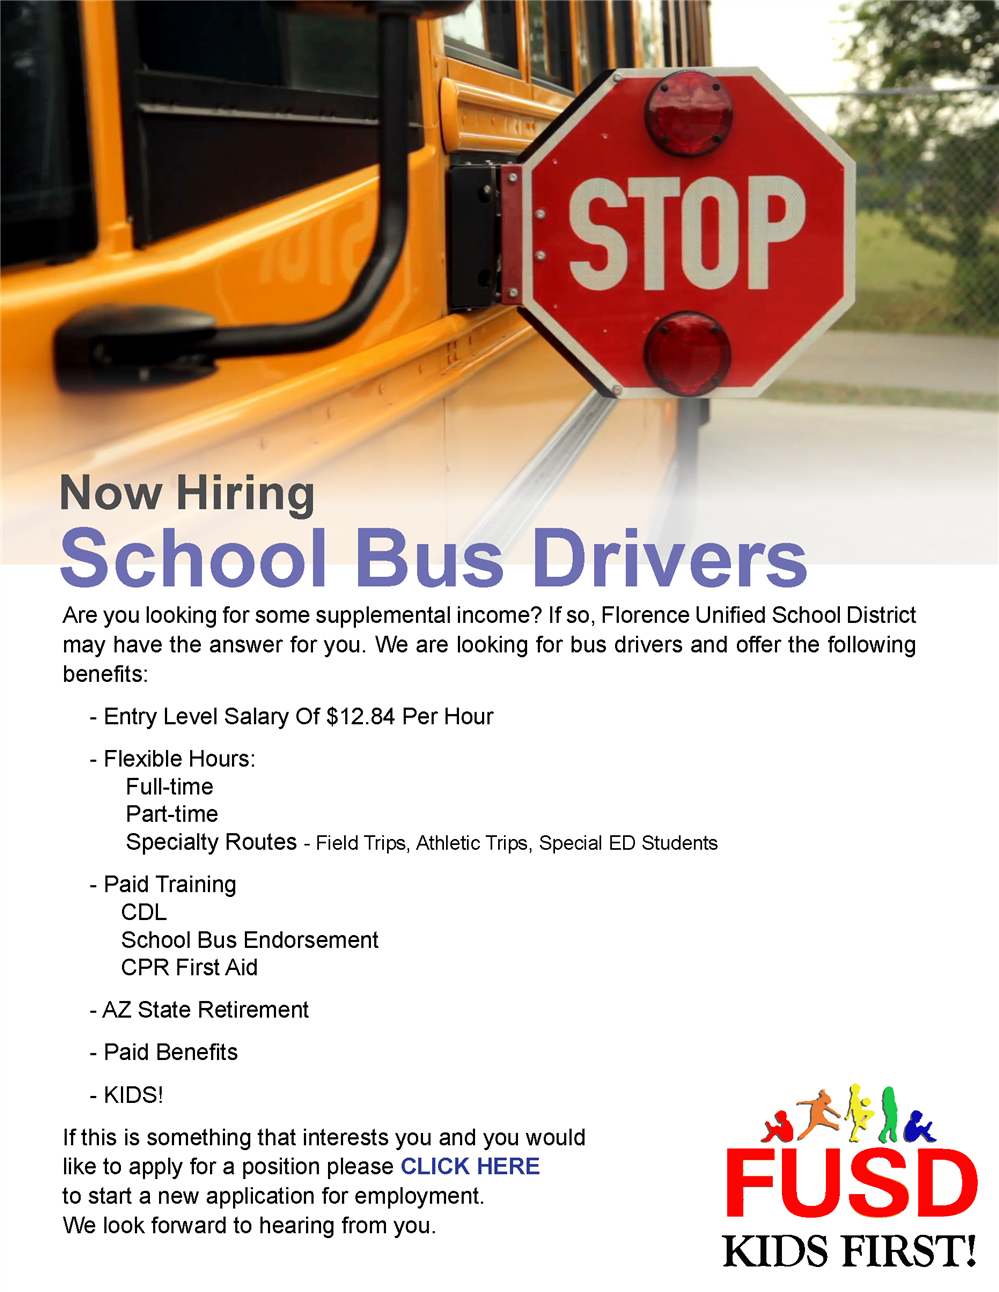 Please call (520)868-8809 for details on how to become a bus driver with FUSD.